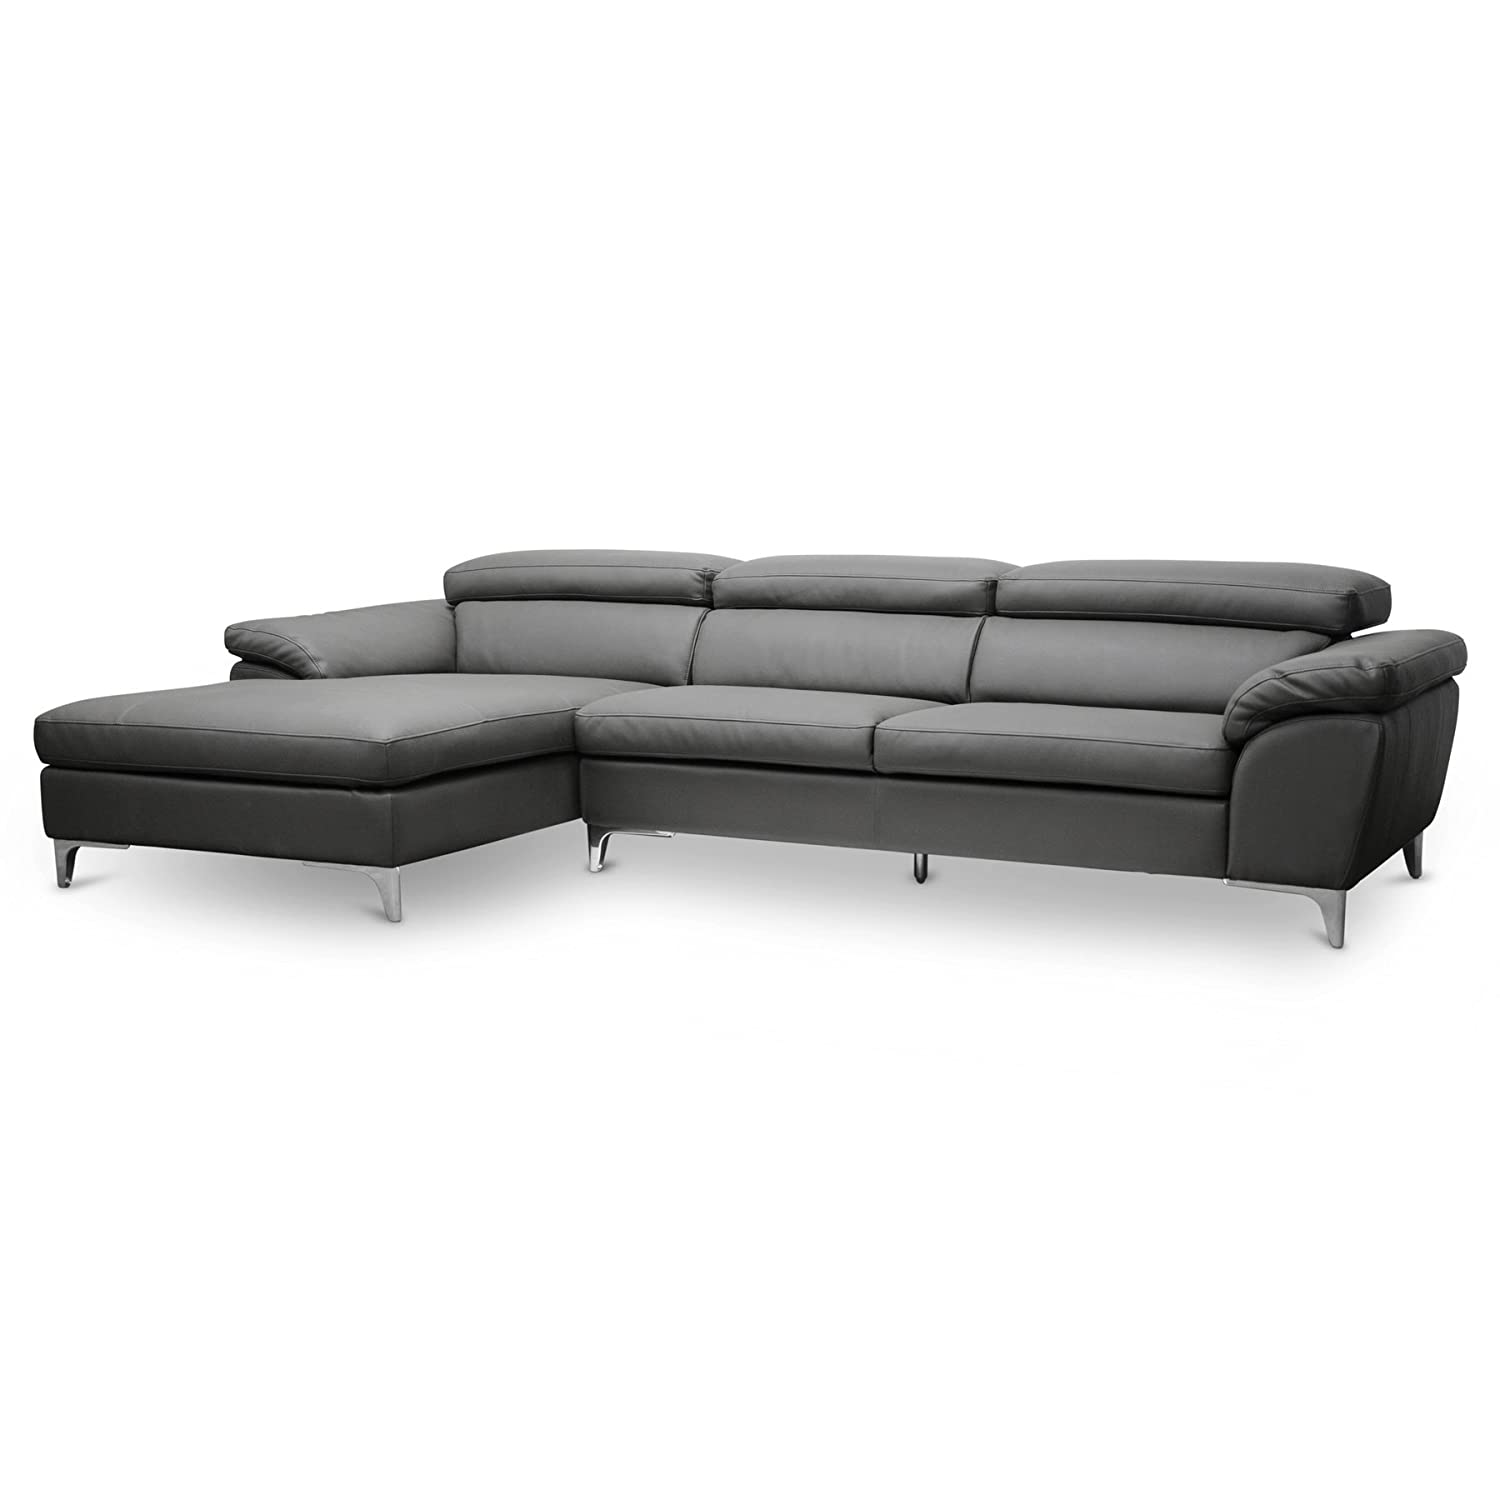 grey in sofa at com comfyco window sectional store lg couch new open poundex sofas